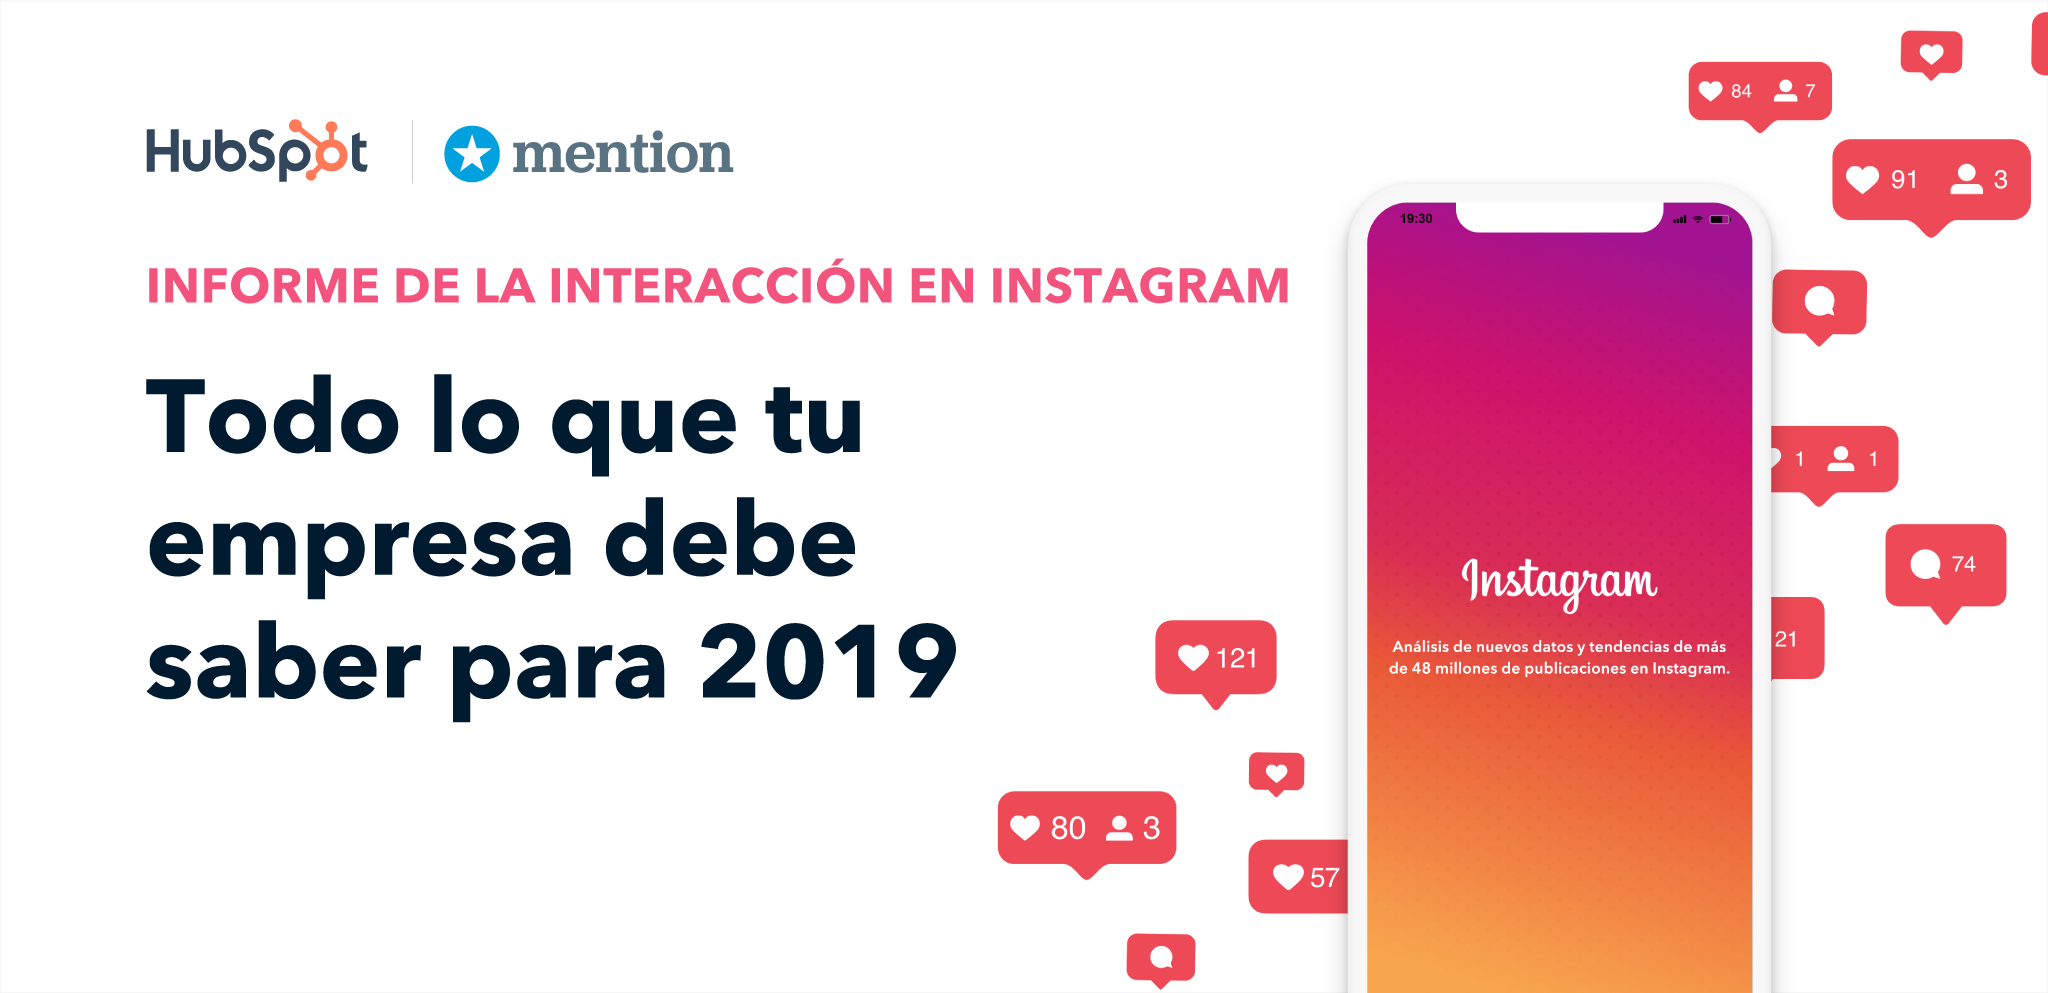 Interacciones - engagement en Instagram